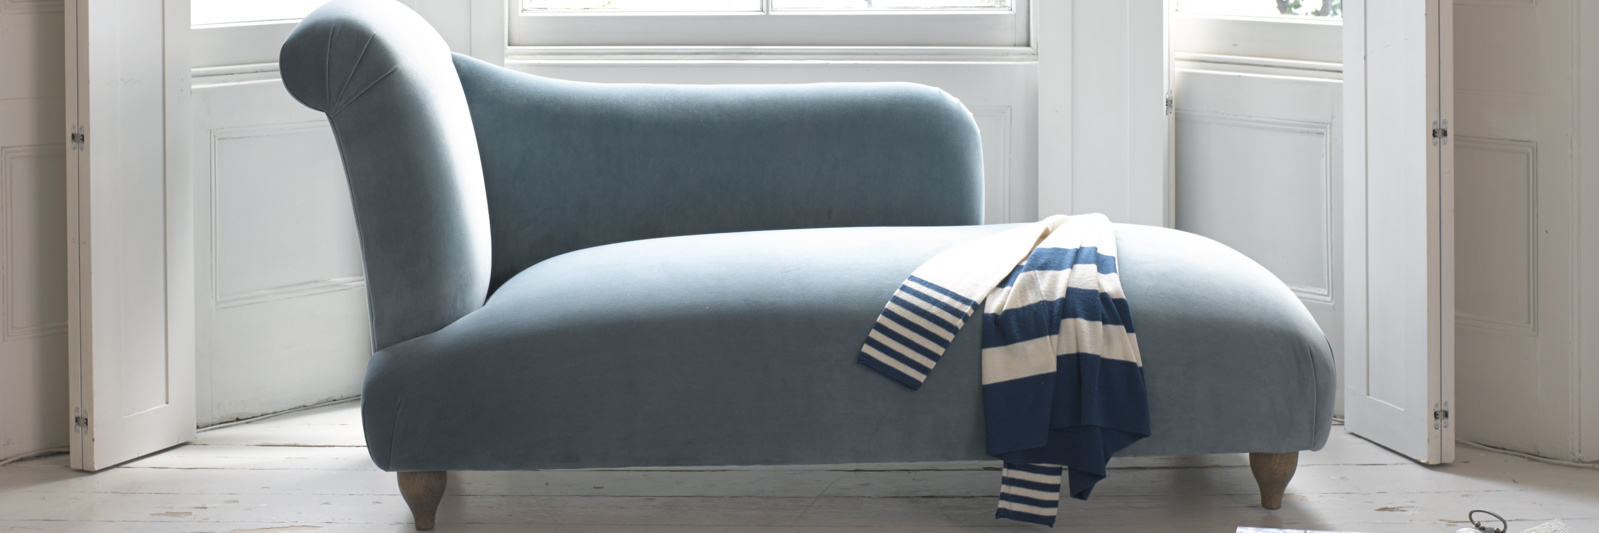 Bronte British made beautiful contemporary chaise longue sofa